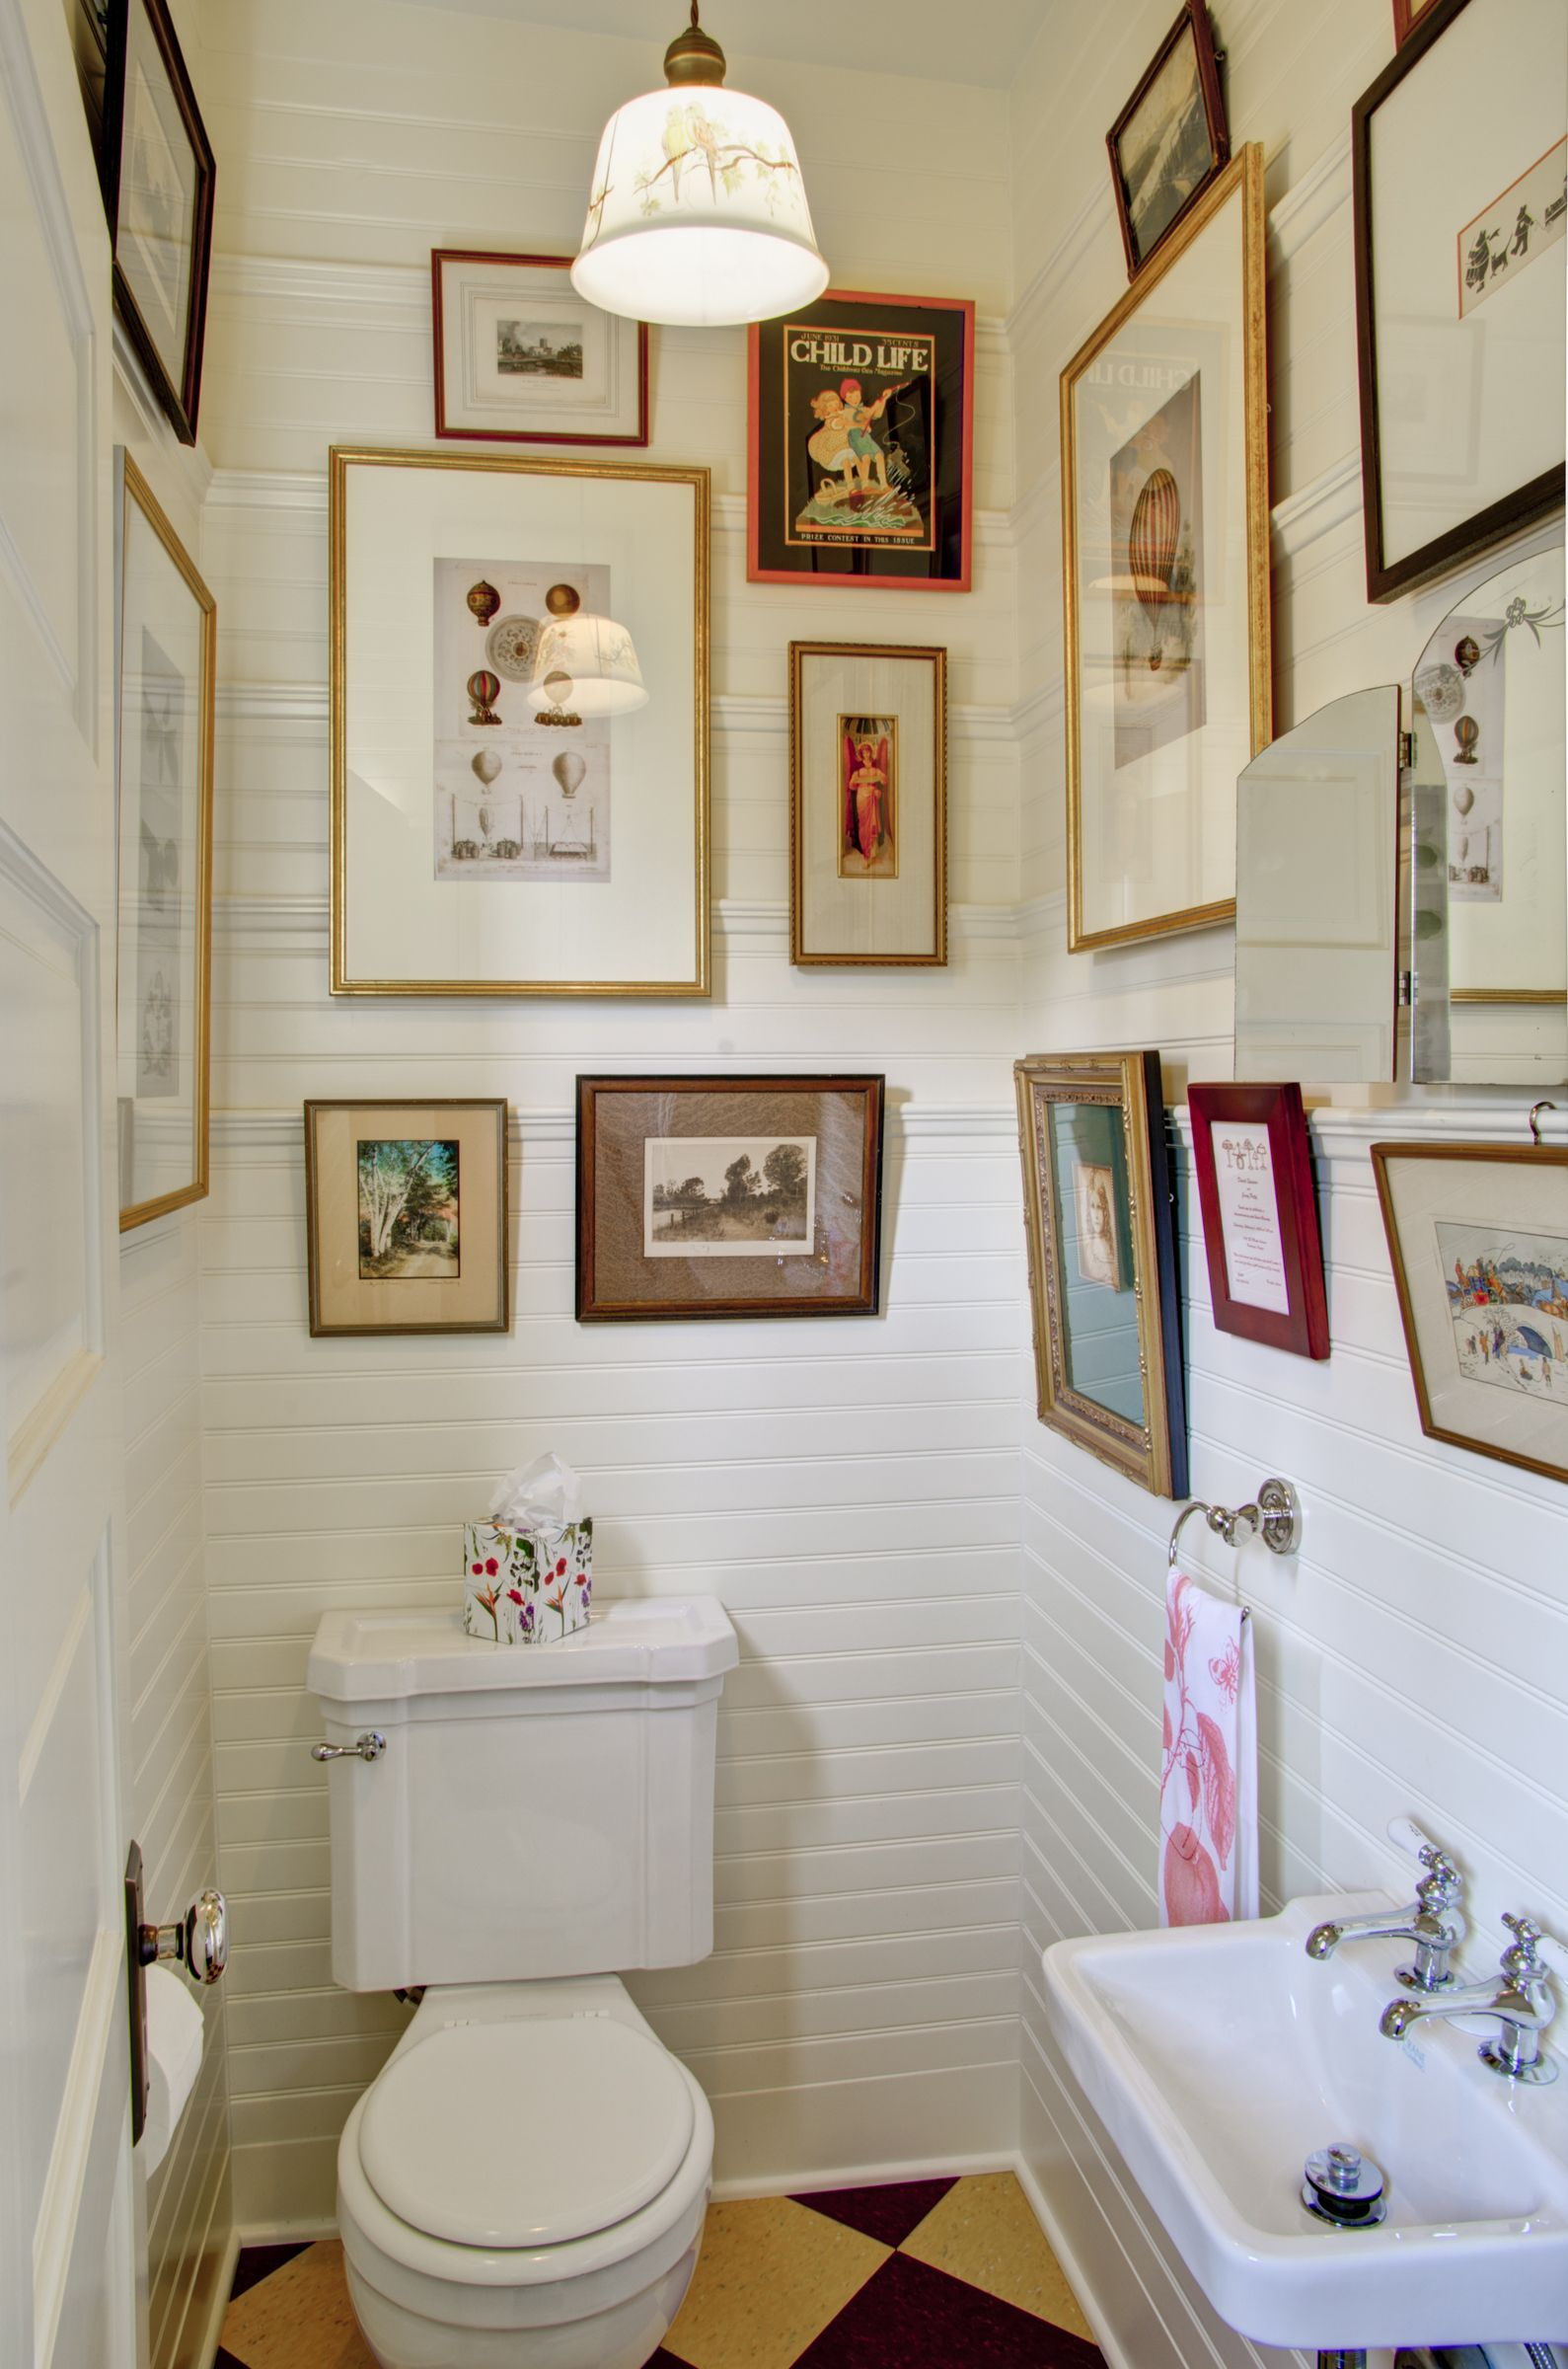 Bathroom chic diy bathroom wall decor with picture frames and white wooden walls with modern